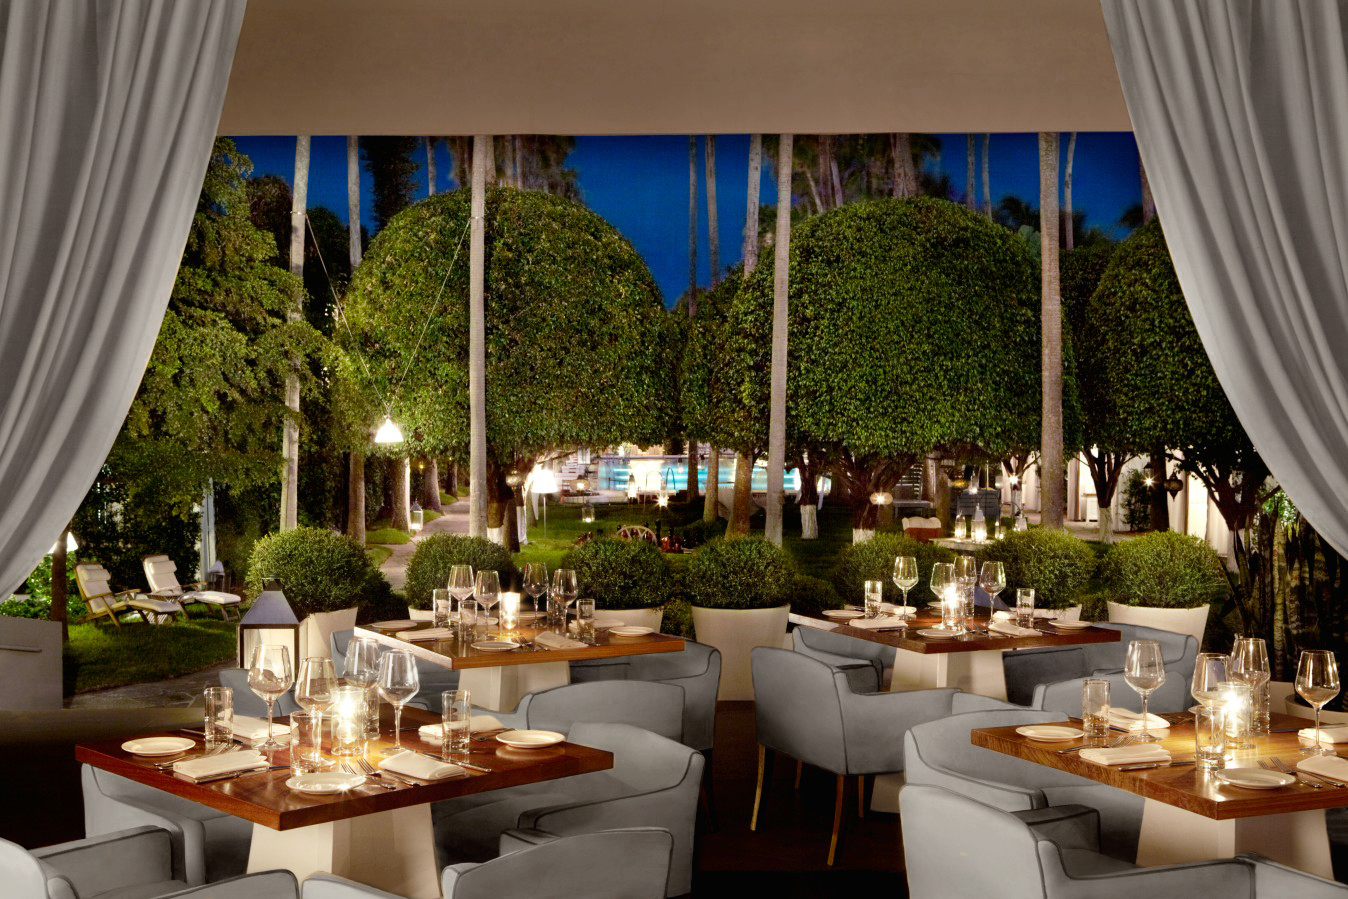 LEYNIA - Well Fed branding client LEYNIA at Delano South Beach is now Miami's #1 Restaurant on Tripadvisor. This bold Argentinean grill concept is led by Chef Jose Icardi, with many menu items prepared over an open-flame parilla in the center of the dining space.Photo courtesy of Delano South Beach.